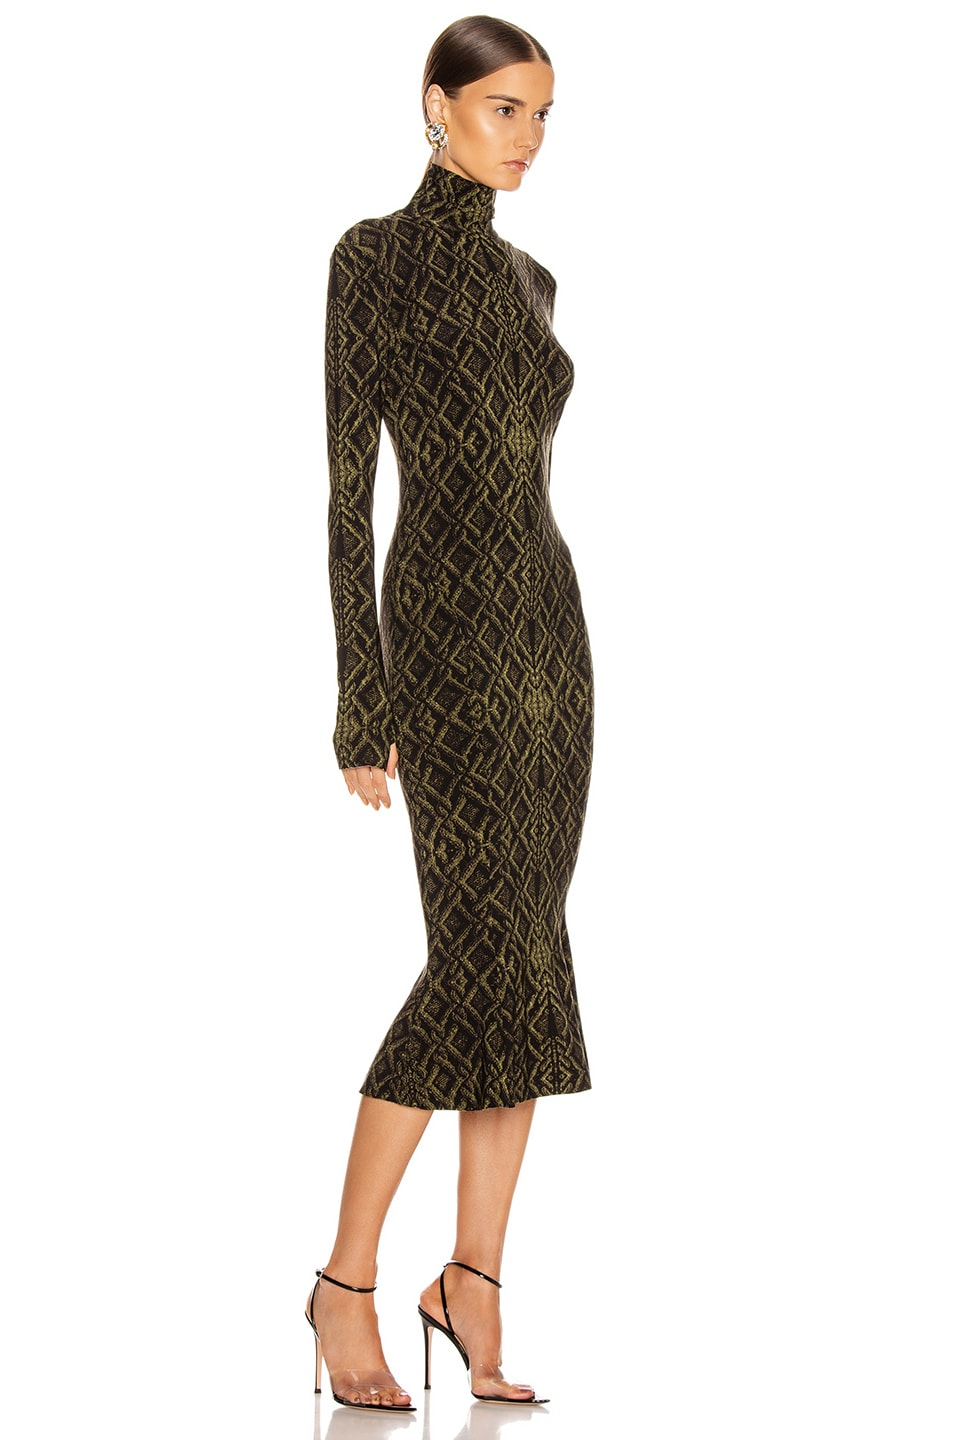 Image 2 of Norma Kamali Long Sleeve Turtleneck Fishtail Dress To Midcalf in Olive Sweater